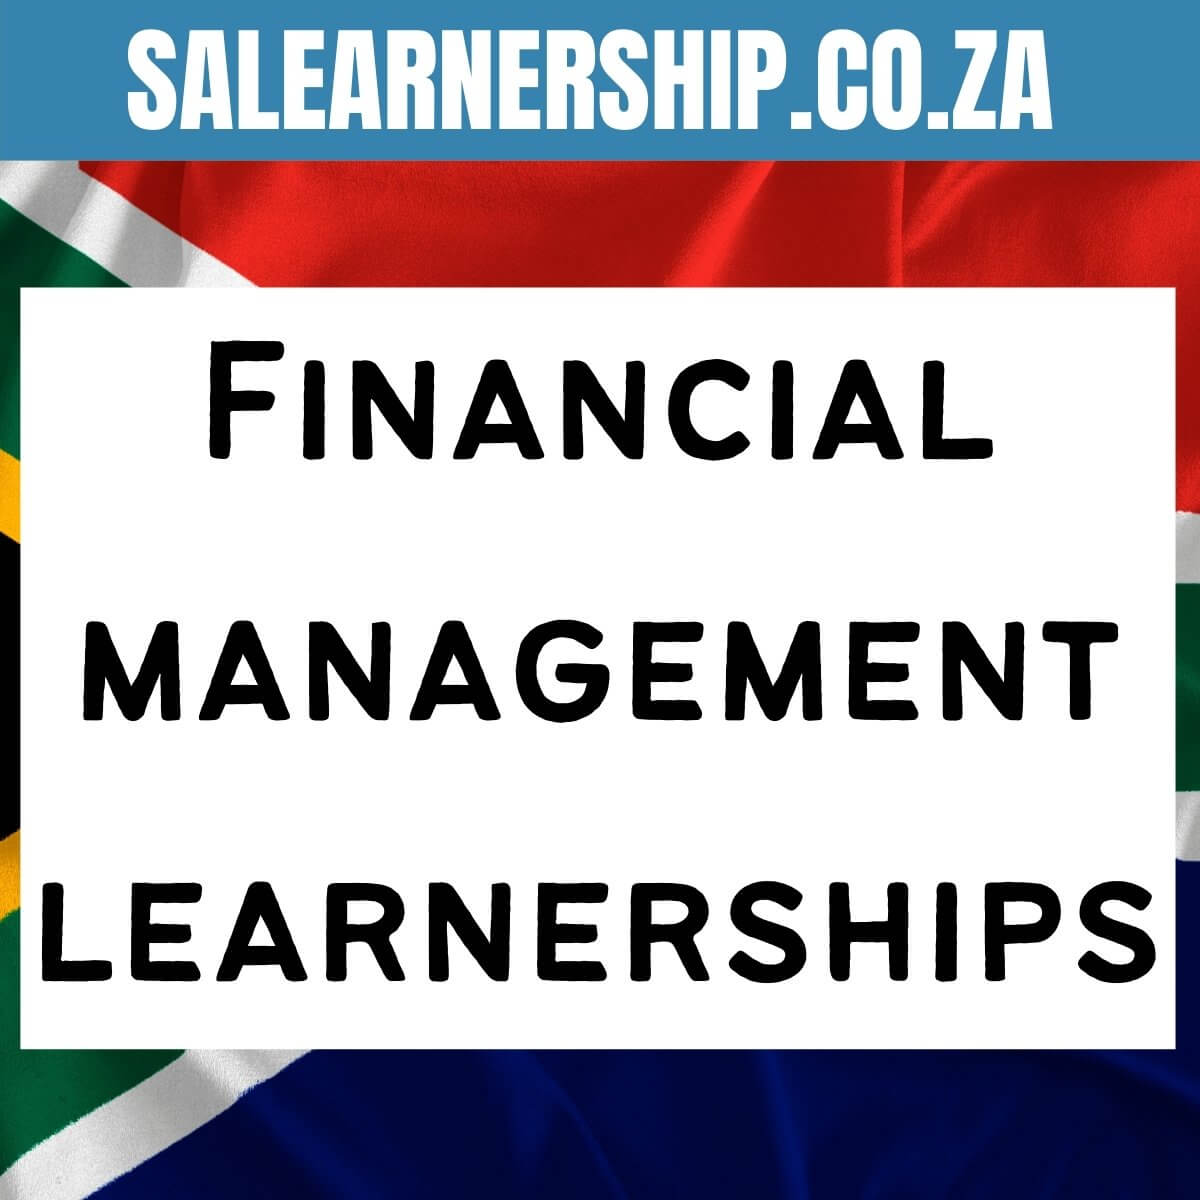 Financial management learnerships